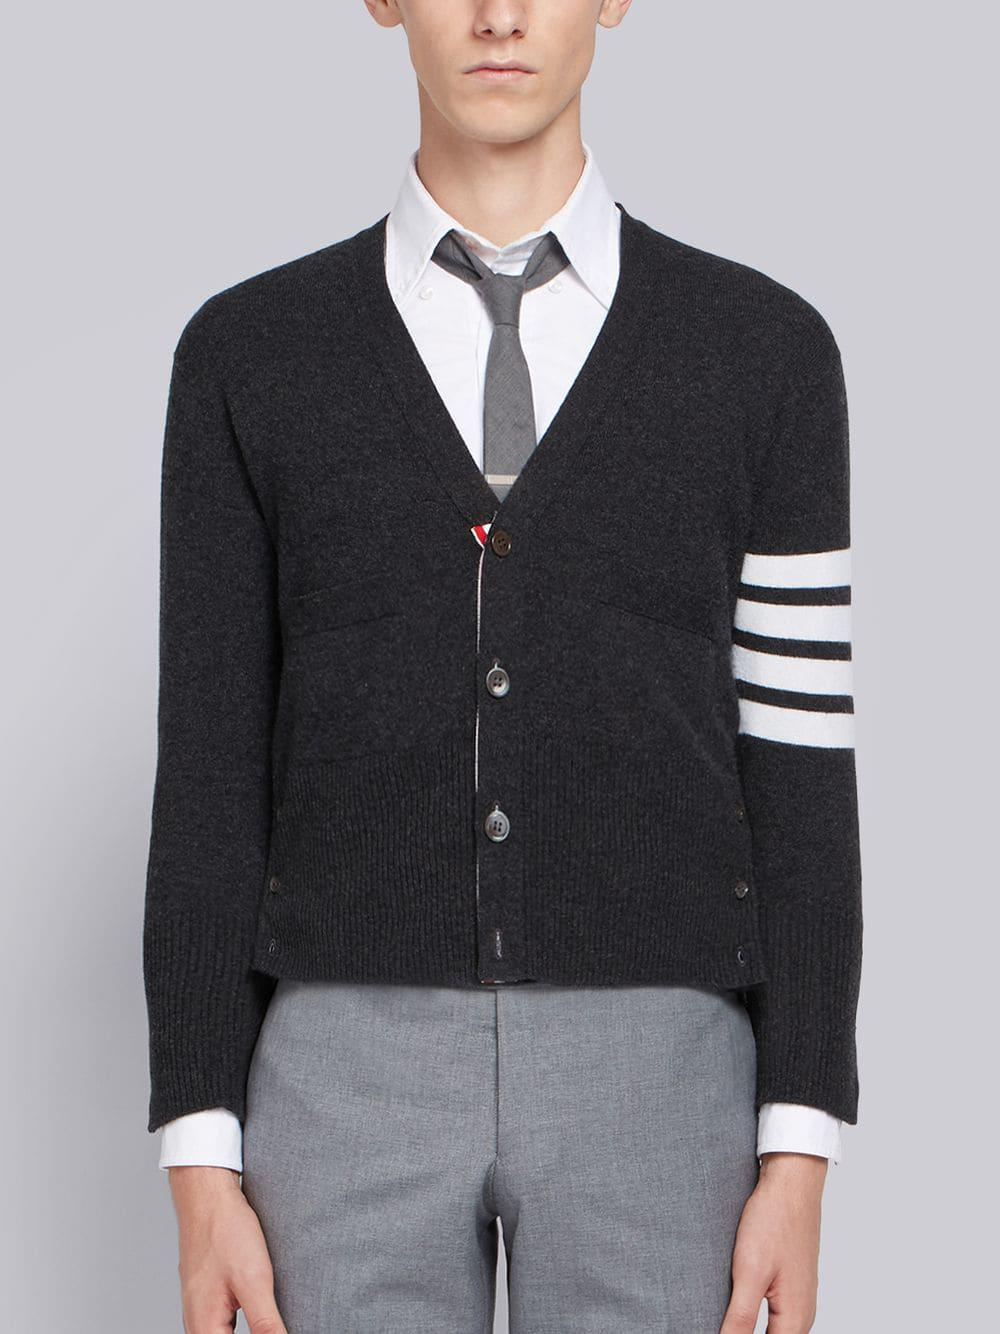 5c36f8f01f Lyst - Thom Browne 4-bar Cashmere Cardigan in Gray for Men - Save 2%